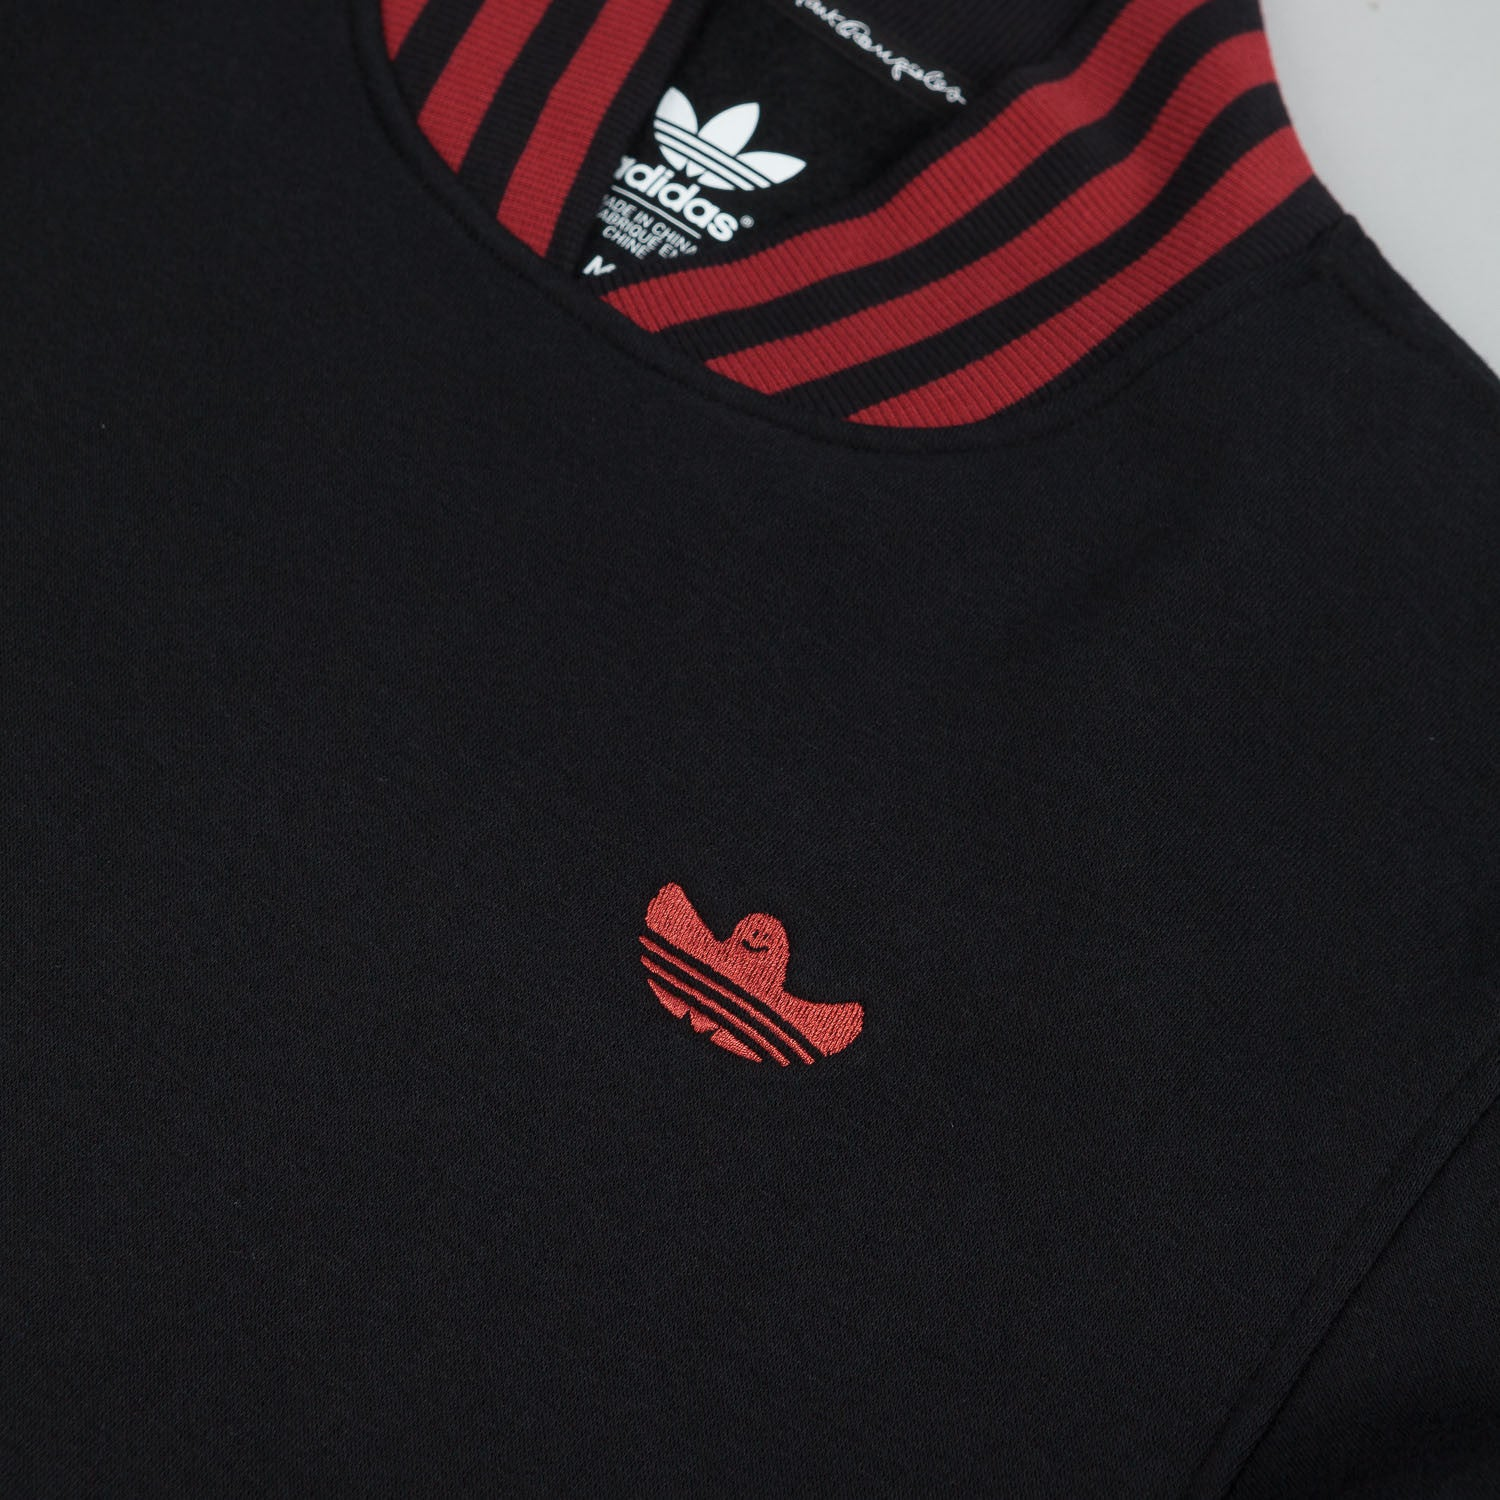 Adidas Gonz Crew Neck Sweatshirt - Black